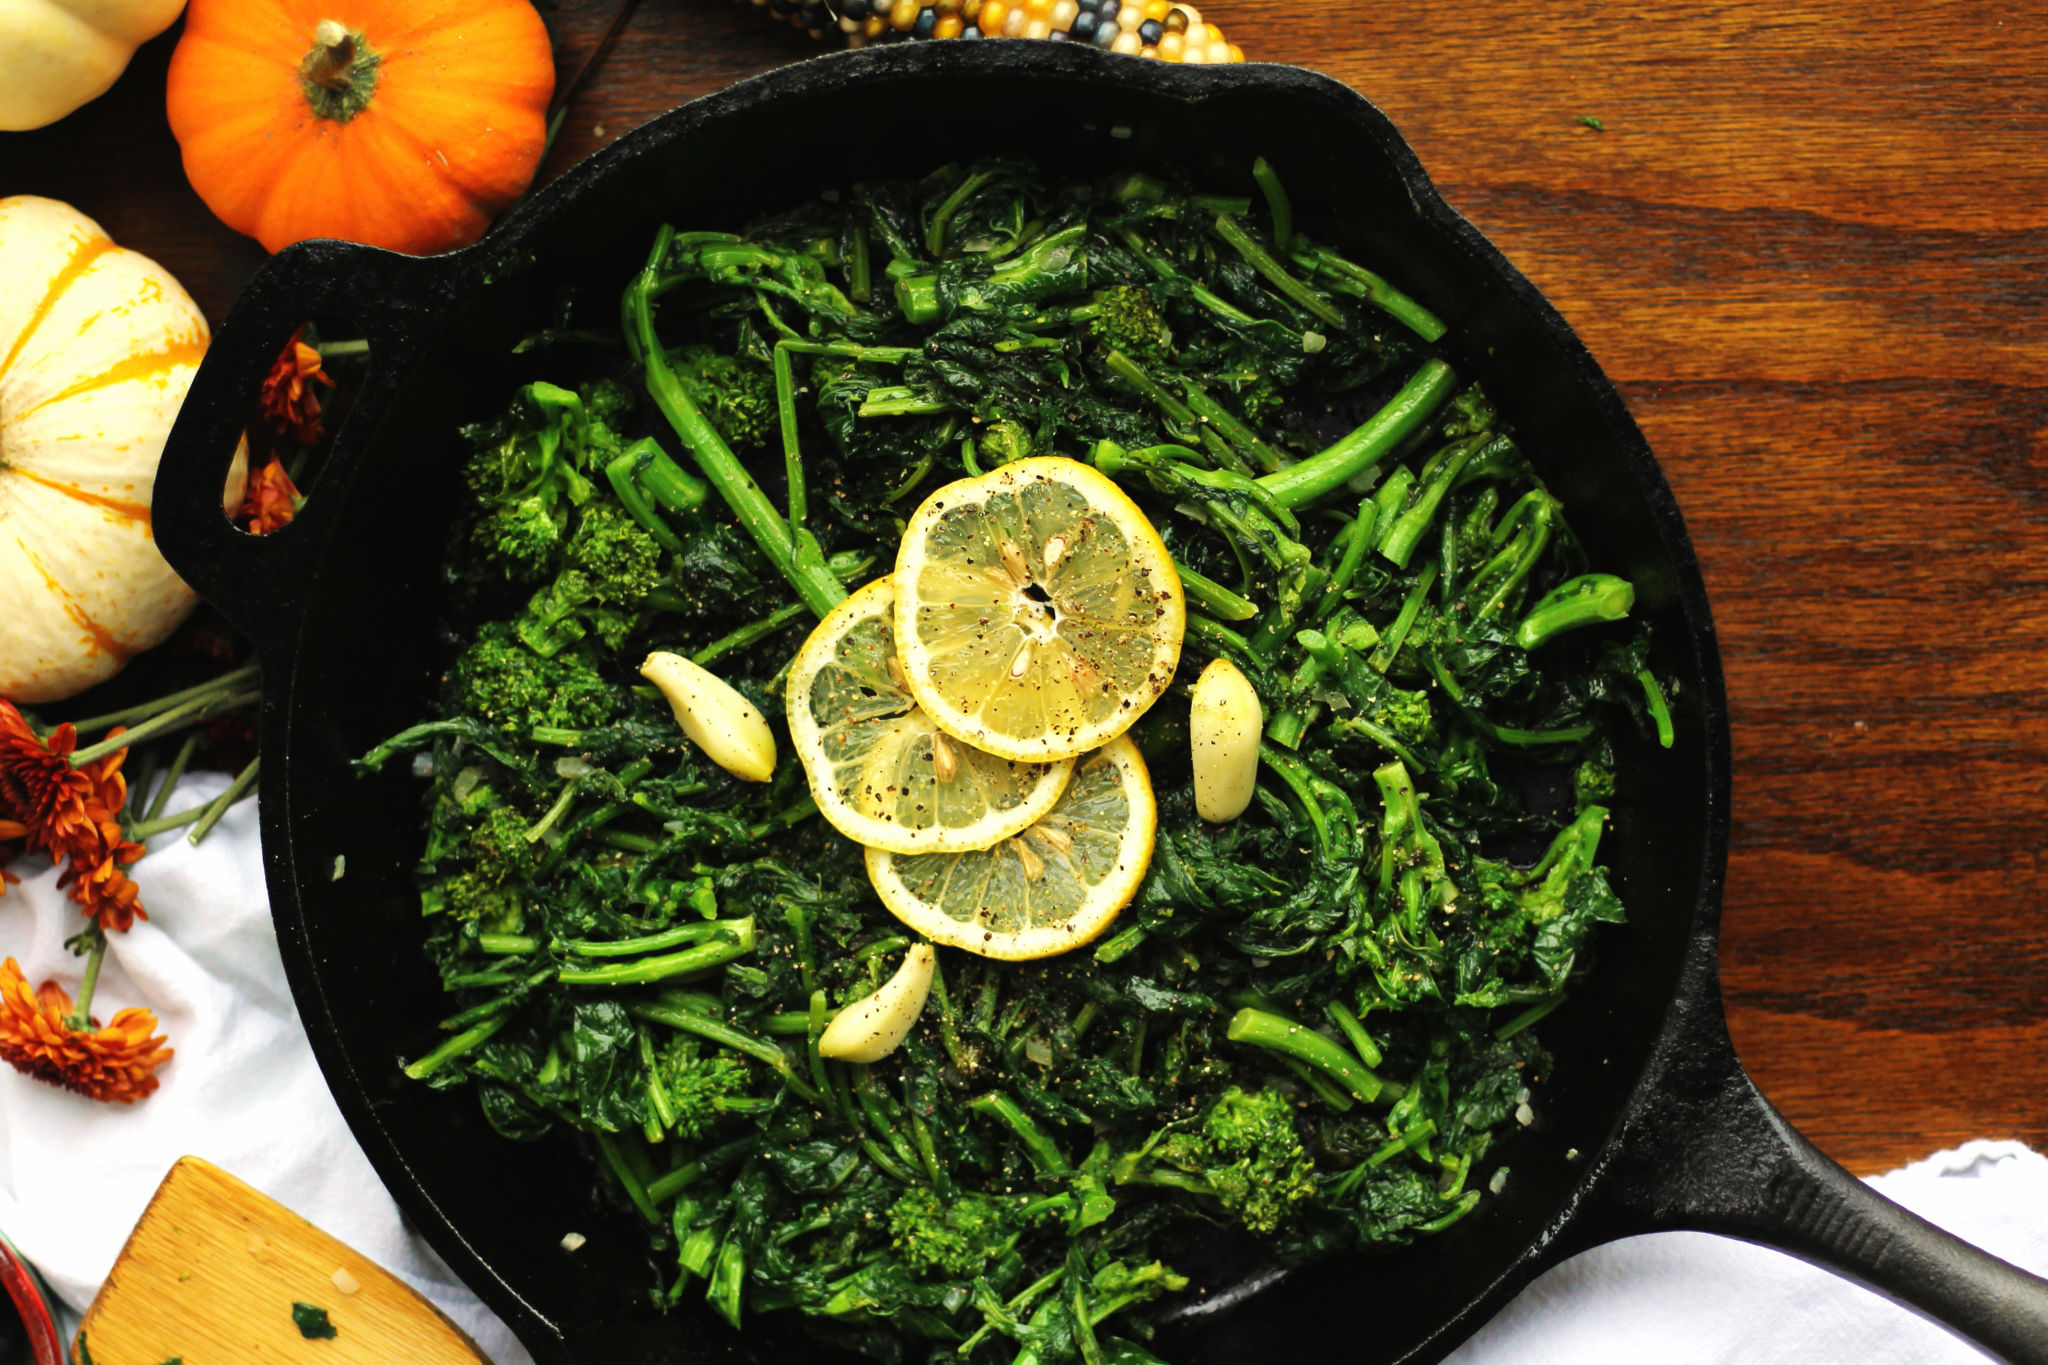 Garlicky Sautéed Broccoli Rabe and Kale